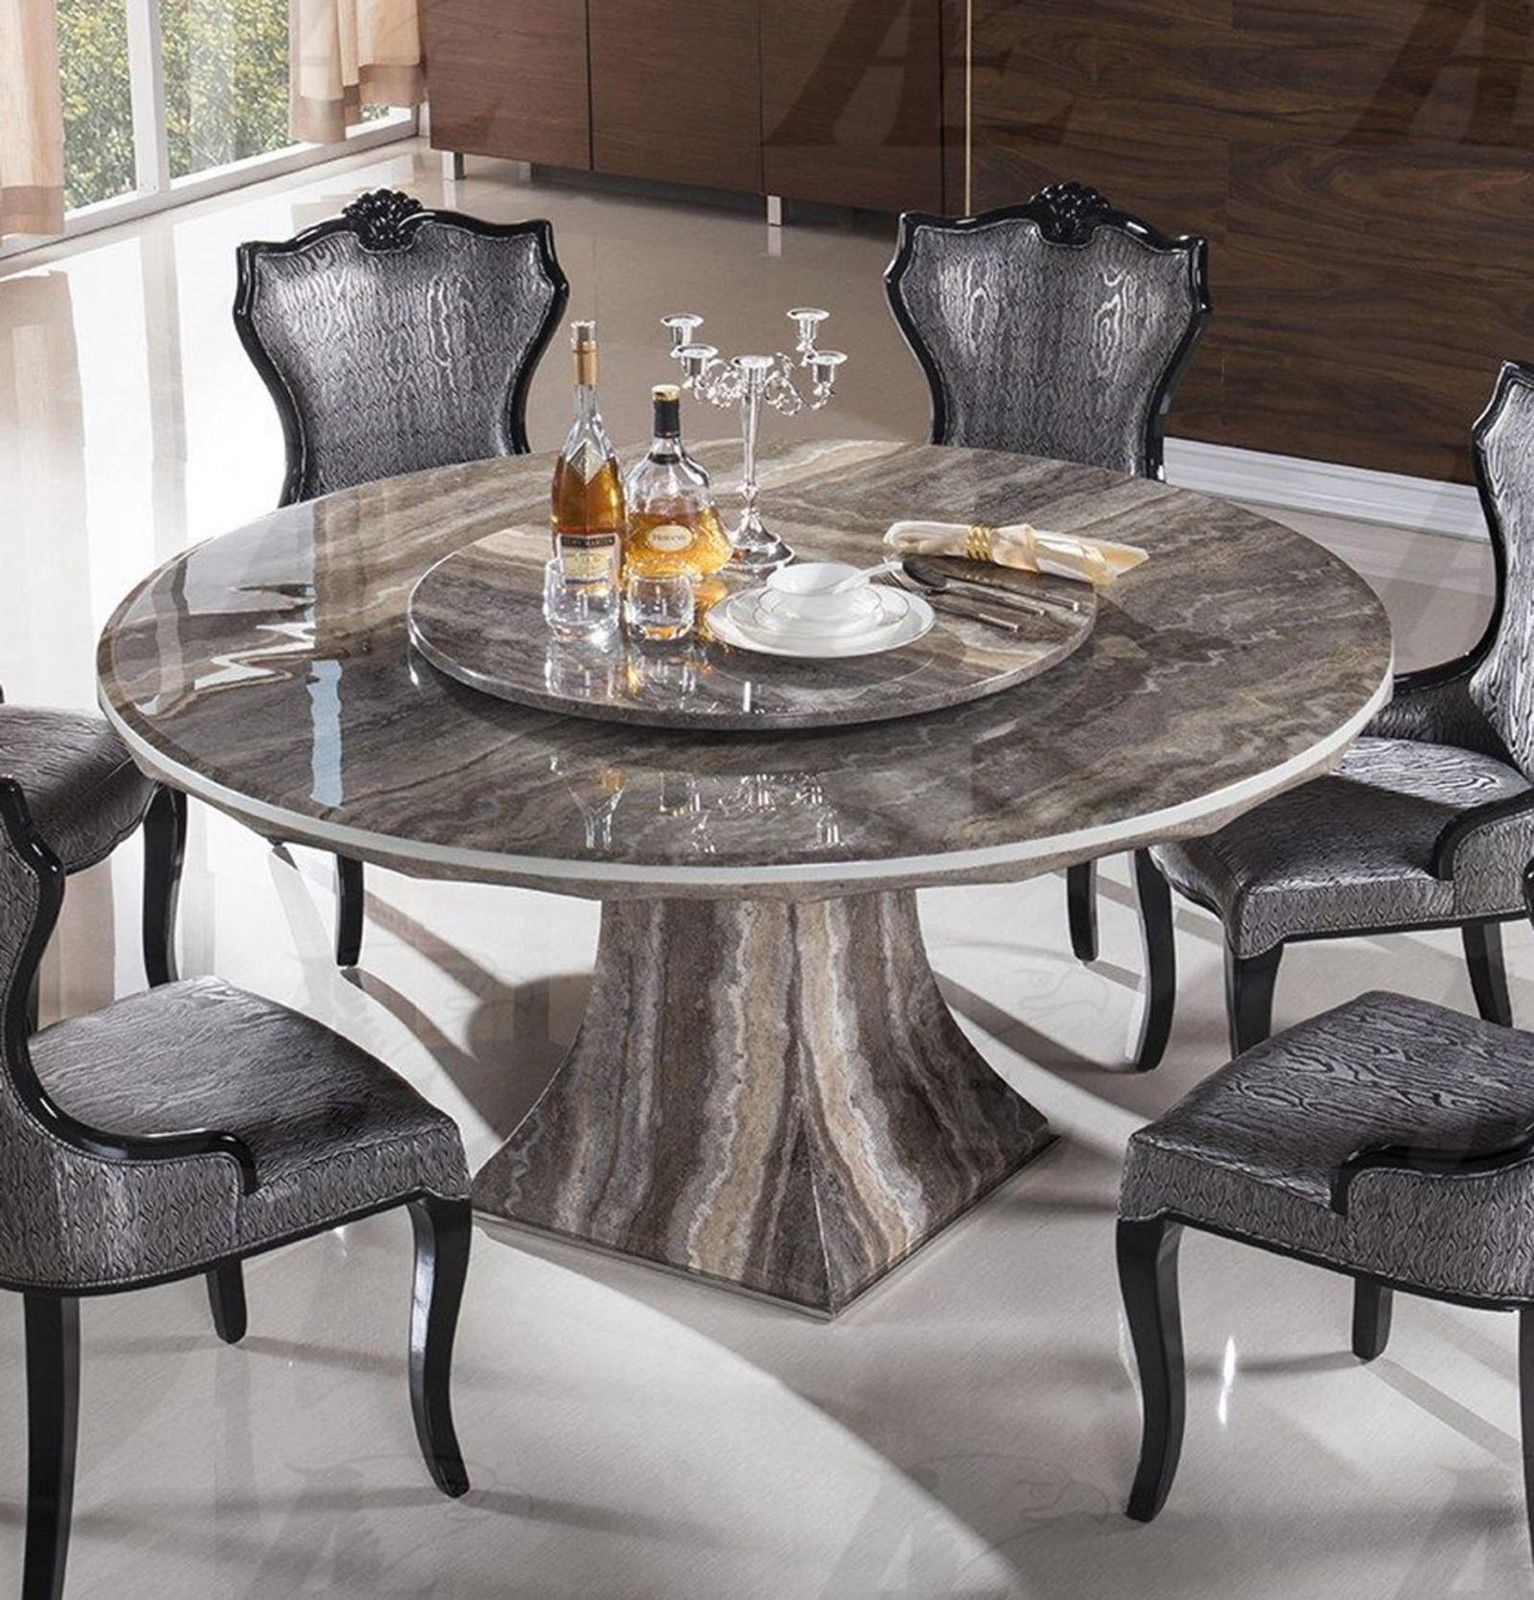 American eagle dt h36 black marble top round dining table for Round stone top dining table